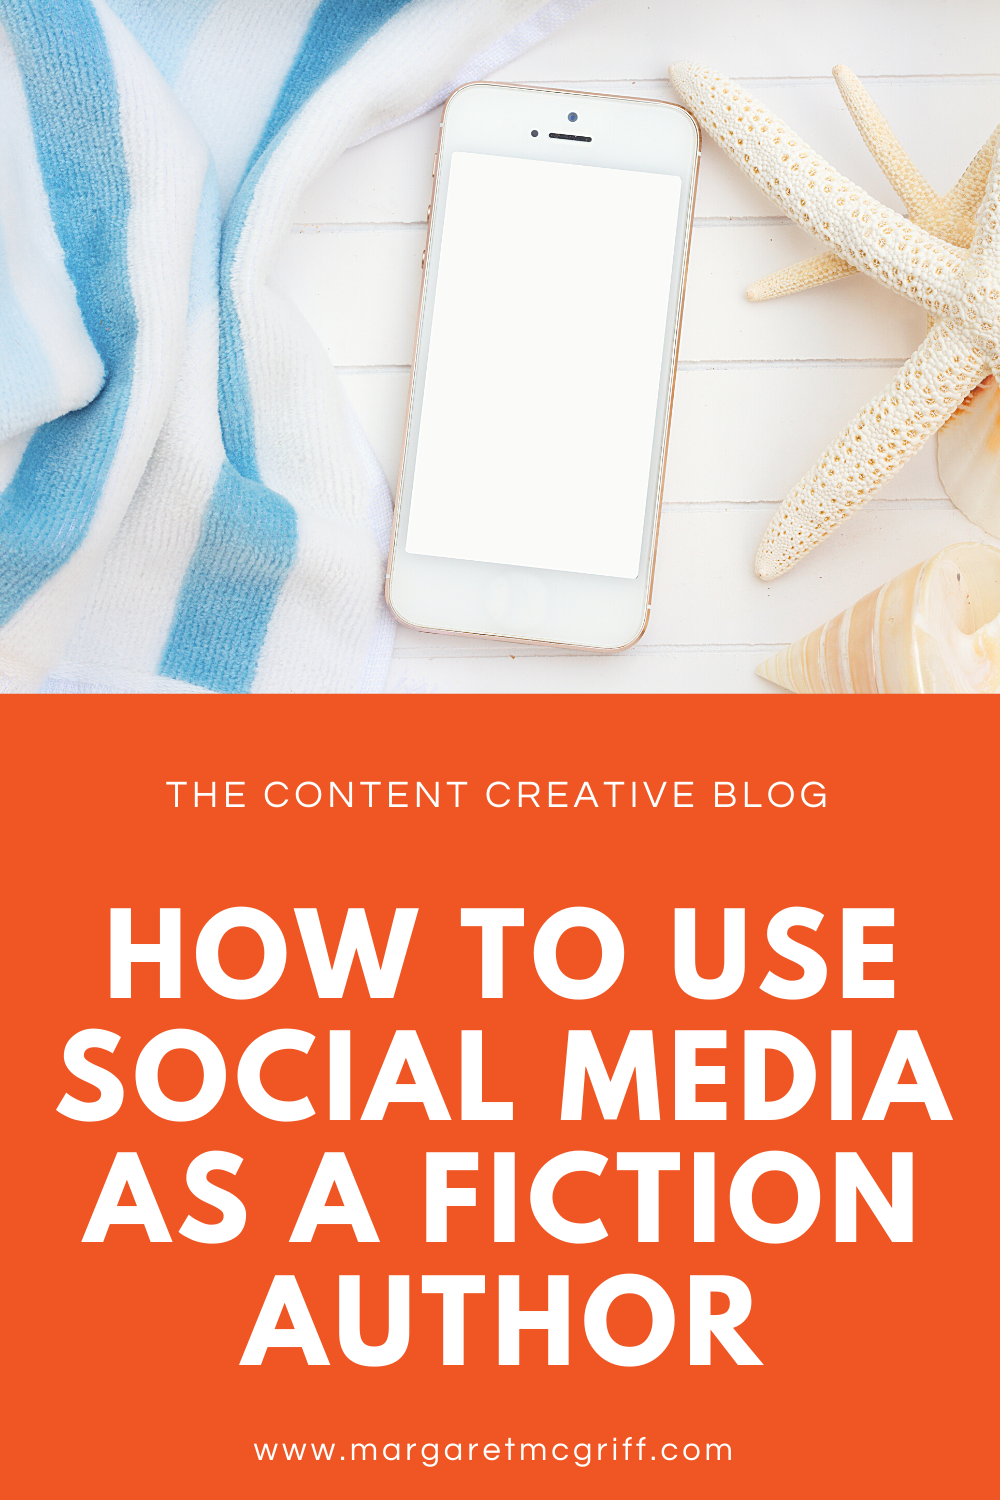 Many authors and editors think that the first place they should start with marketing is social media.  However the key to using it the right way is to know the role it really plays in our writer business.